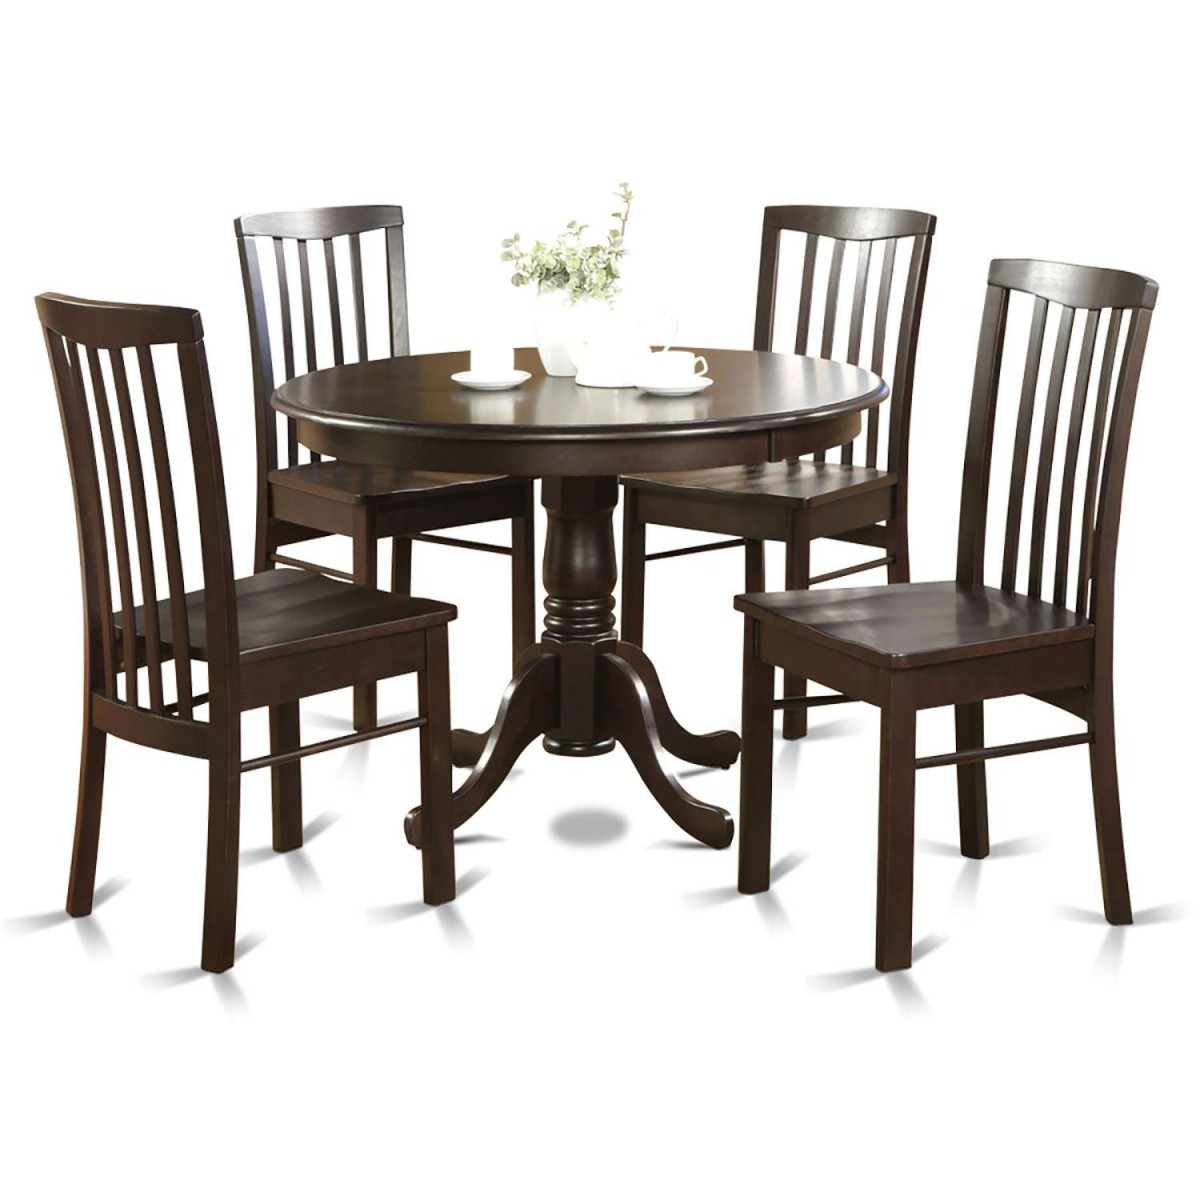 5 Piece Small Round Table And 4 Dining Chairs: East West Furniture Hartland 5 Piece Kitchen Nook Dining